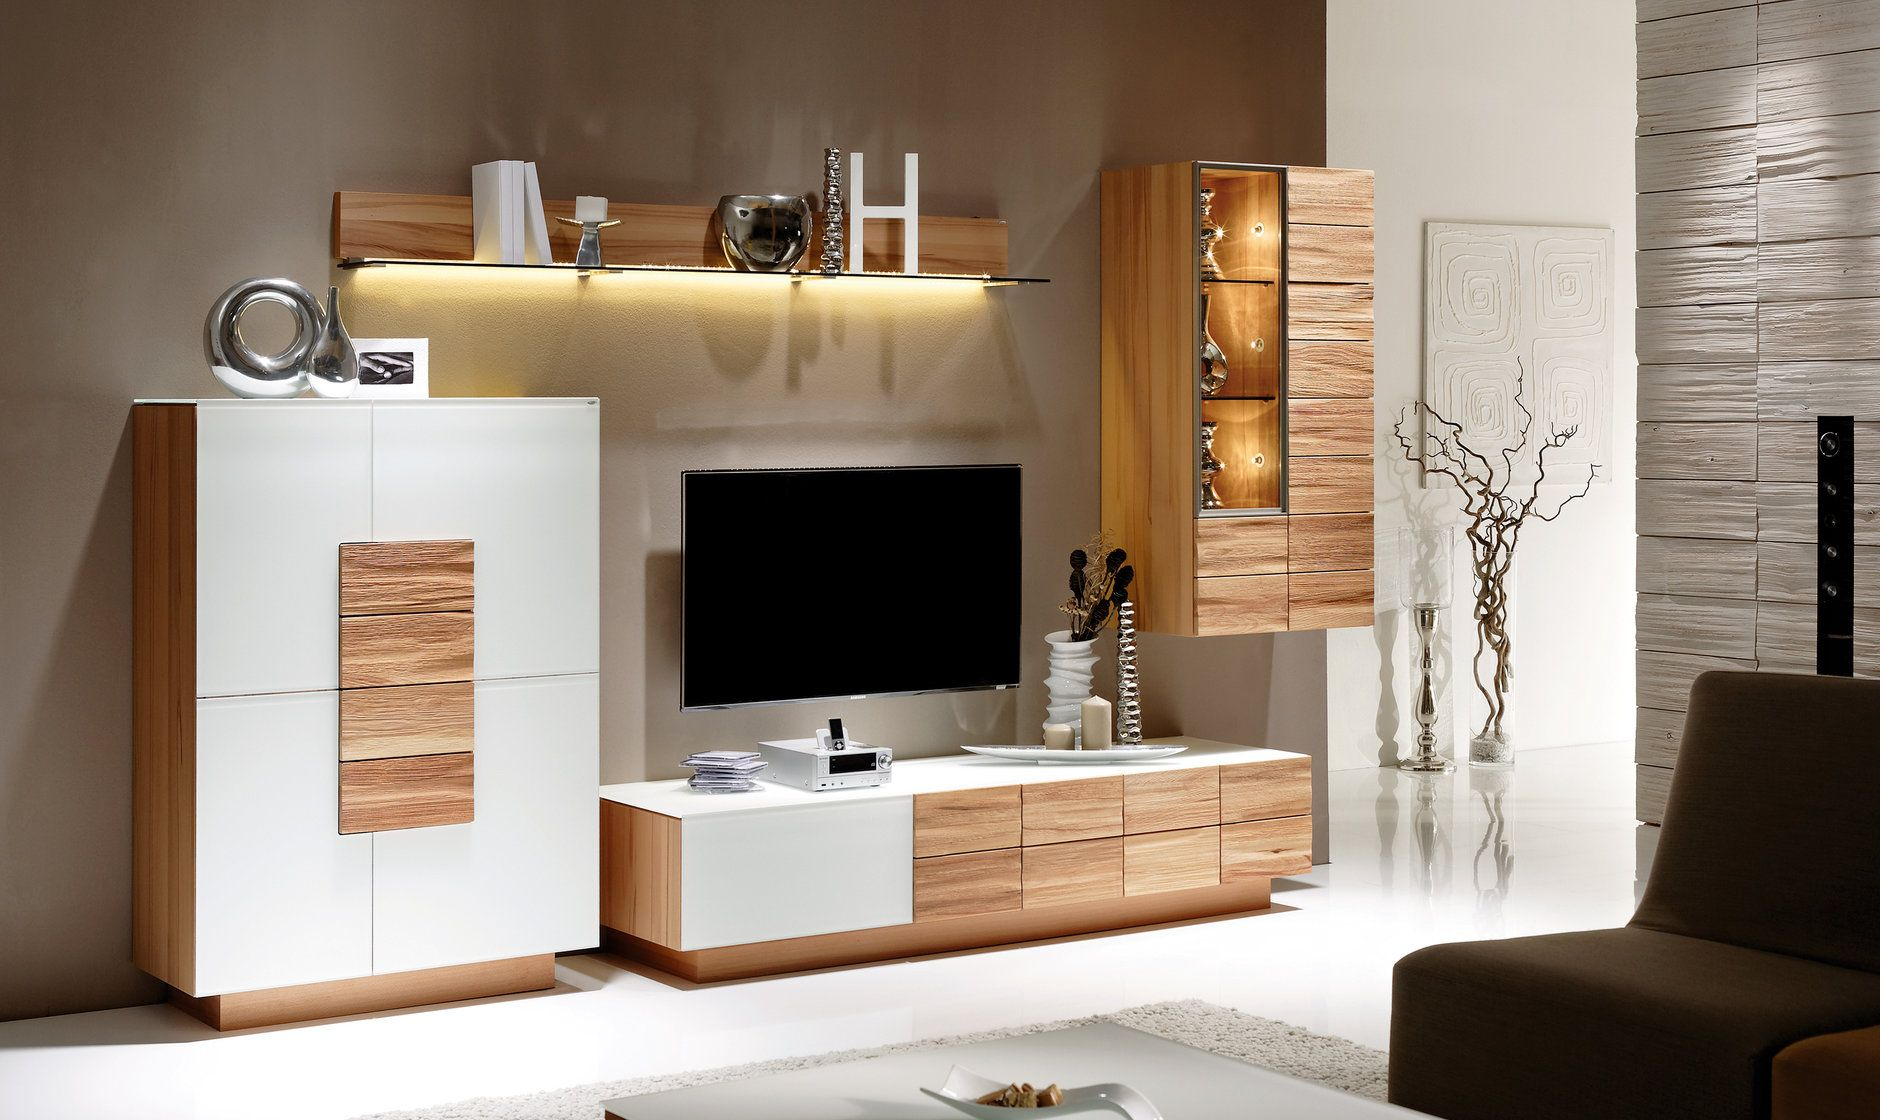 v montana wohnzimmerm bel voglauer wohnideen. Black Bedroom Furniture Sets. Home Design Ideas